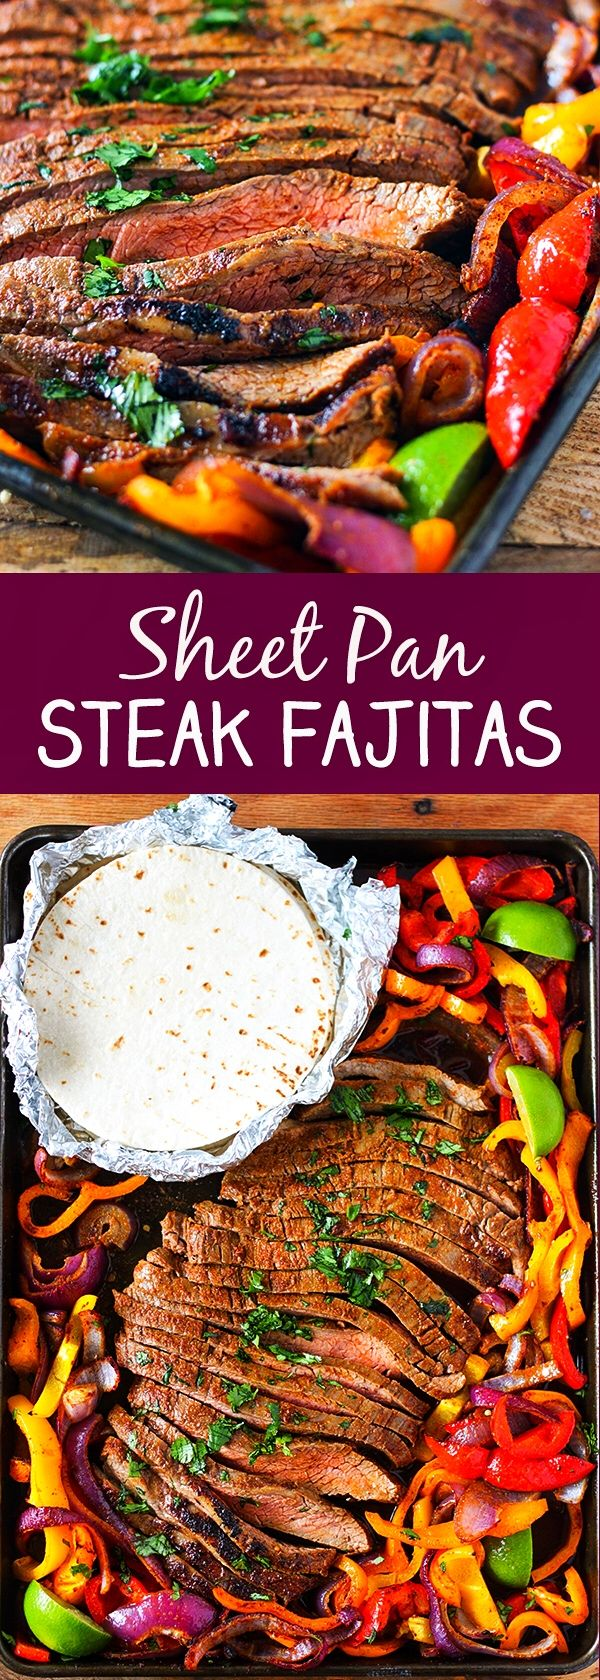 Sheet Pan Steak Fajitas #steakfajitarecipe